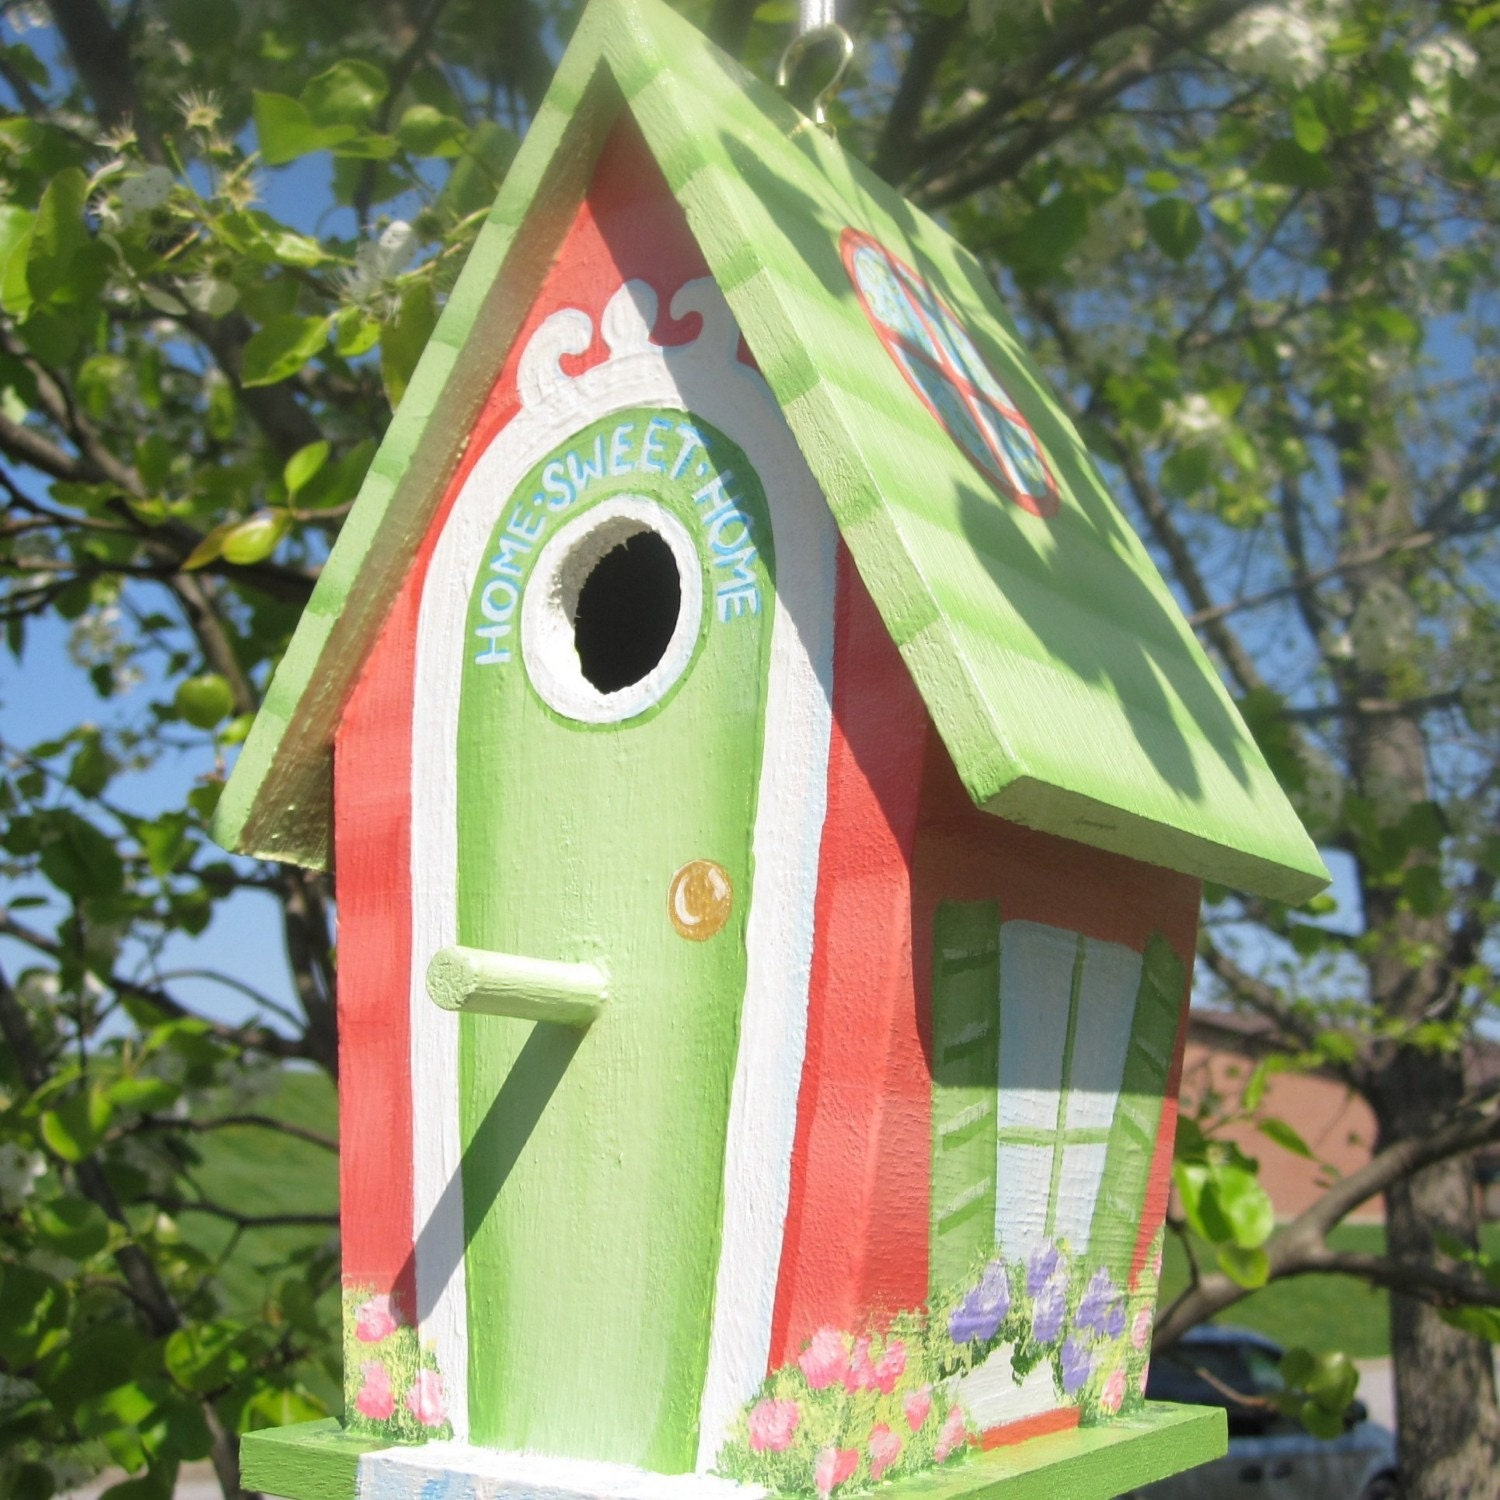 il_fullxfull.208162150 Painted Bird Houses Designs Ideas on home office design ideas, painted bird house craft, painted wood bird house, painted bird house with cat, computer nerd gift ideas, painted wood craft ideas, painted dresser ideas, pet cool house ideas, painted furniture, painted red and white bird, painted owl bird house, jewelry designs ideas, painted bird house roof, painted decorative bird houses designs, painted gingerbread house craft,